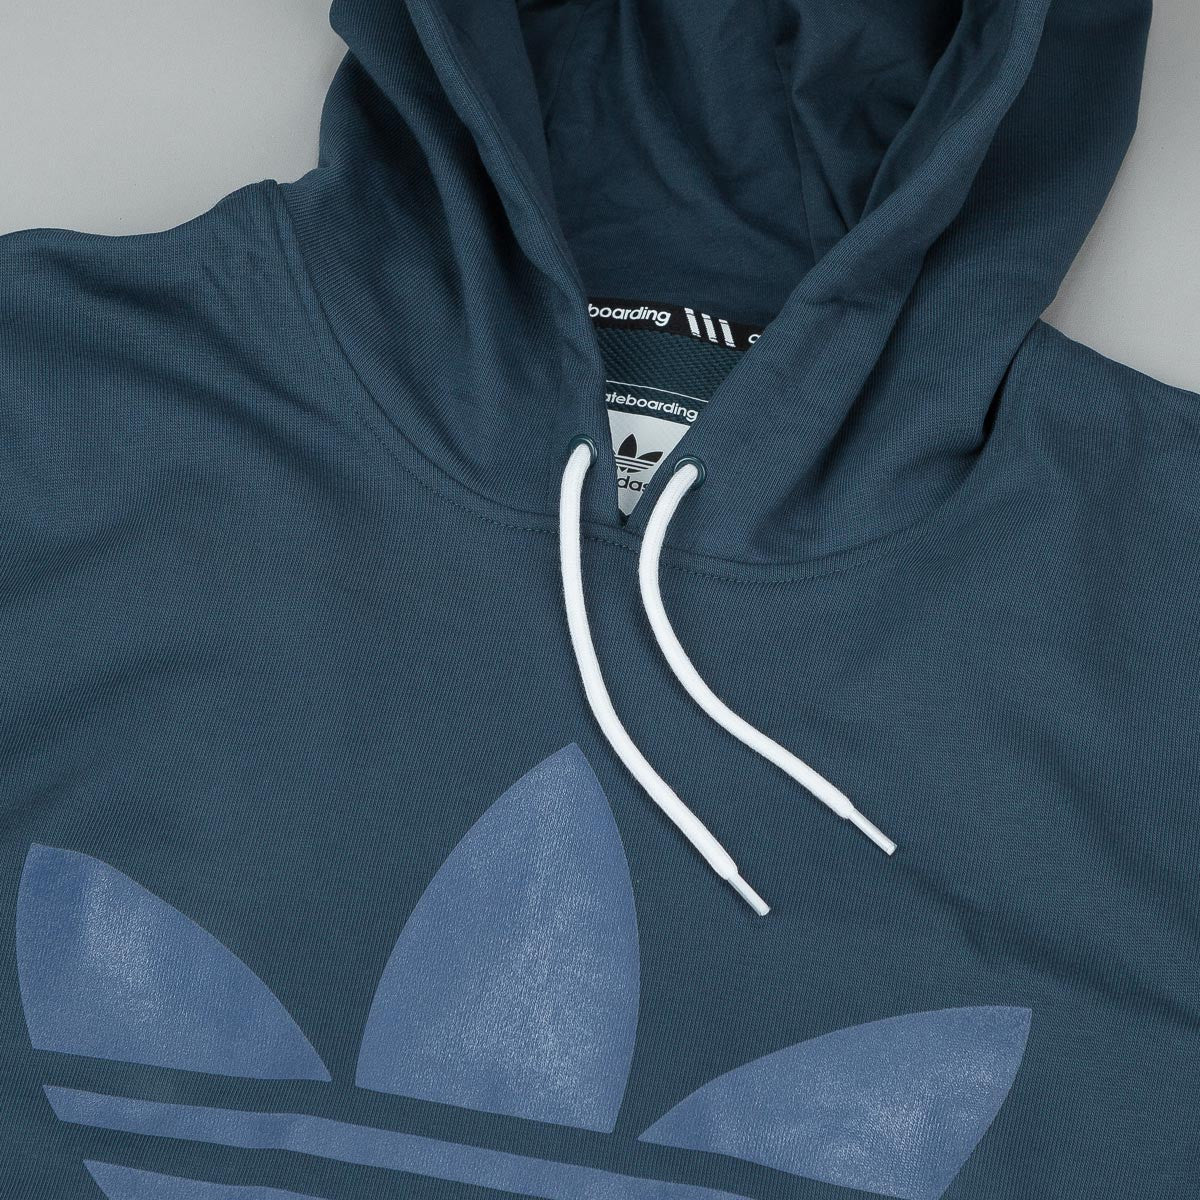 Adidas Adv Hooded Sweatshirt - Midnight / Faded Ink